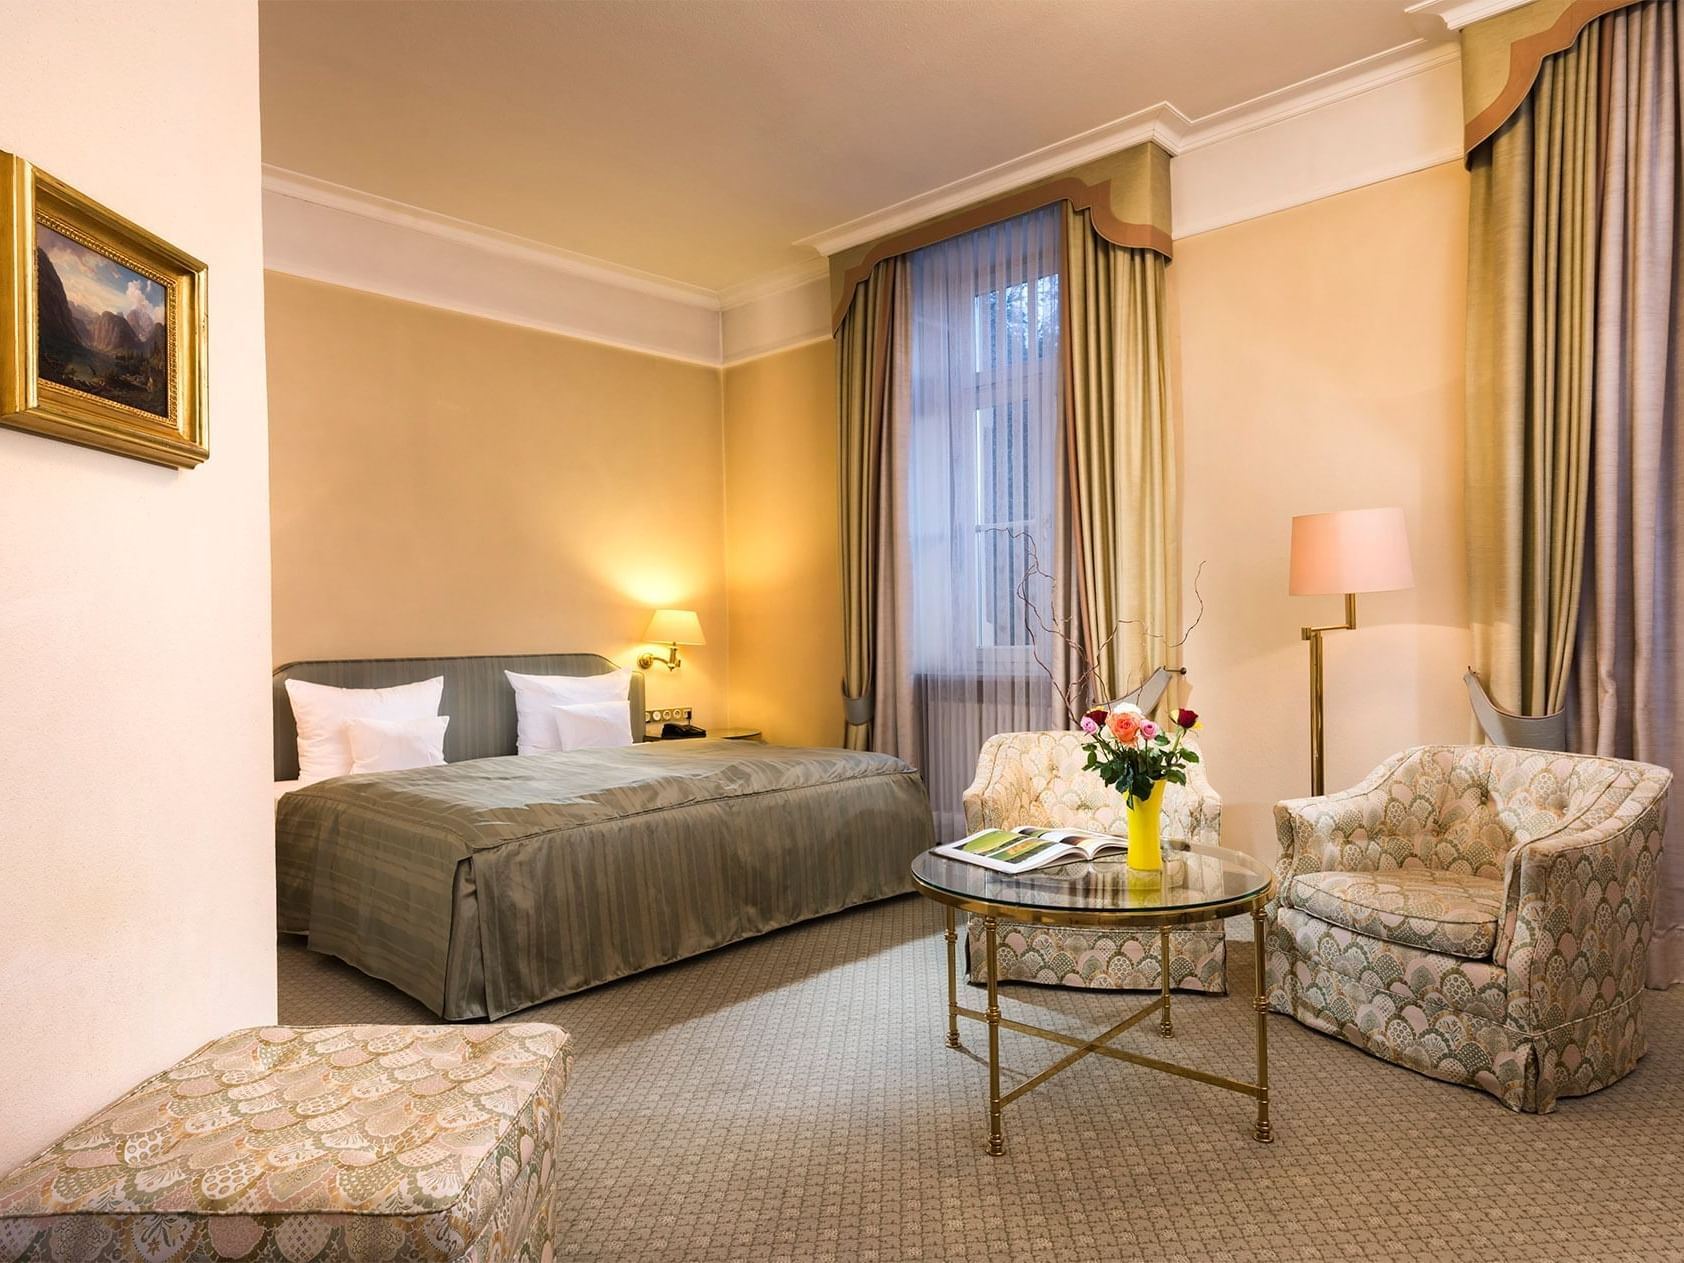 Bed & lounge area of Suite at Precise Bad Reichenhall Bavaria